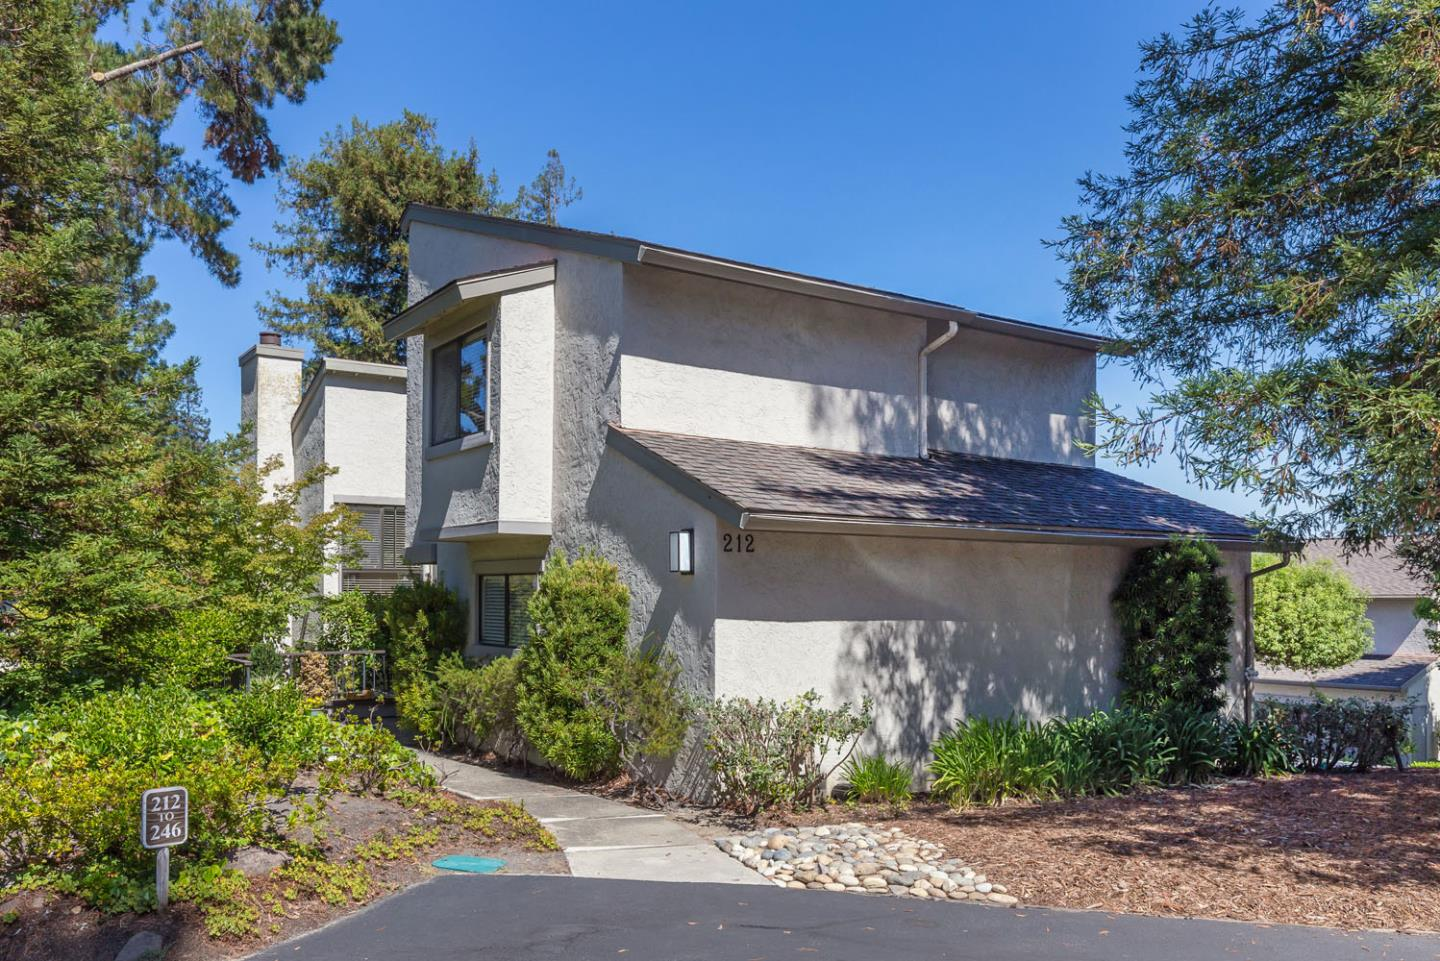 212 Sand Hill Ci Circle Menlo Park, CA 94025 - MLS #: ML81722324